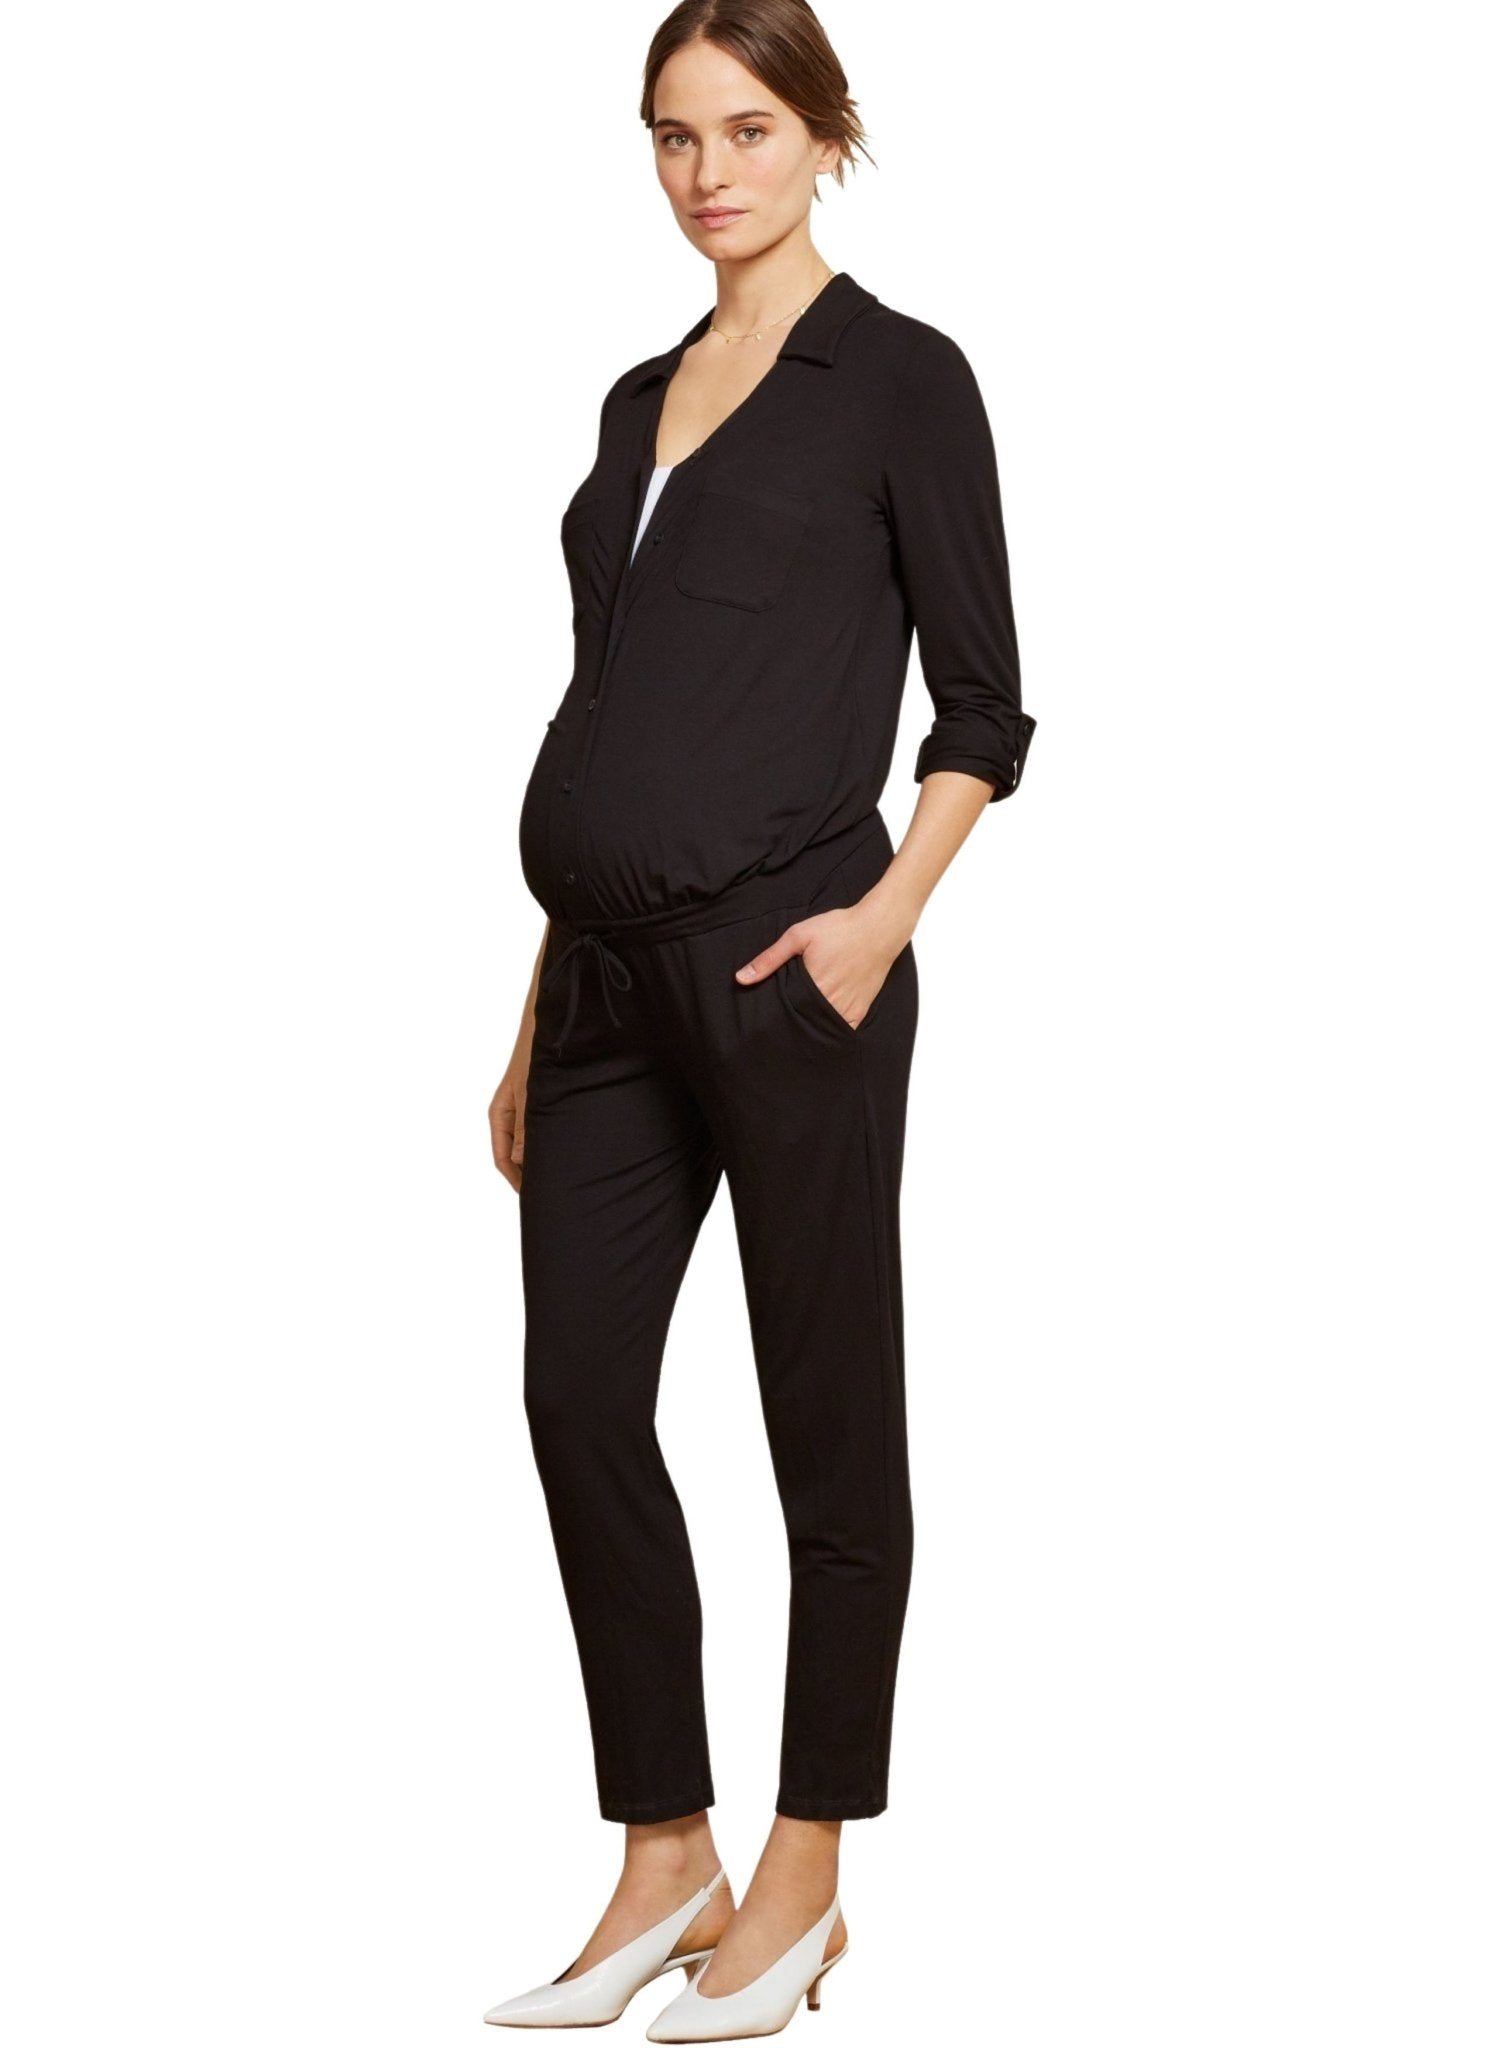 Ashlyn Maternity Jumpsuit - Mums and Bumps